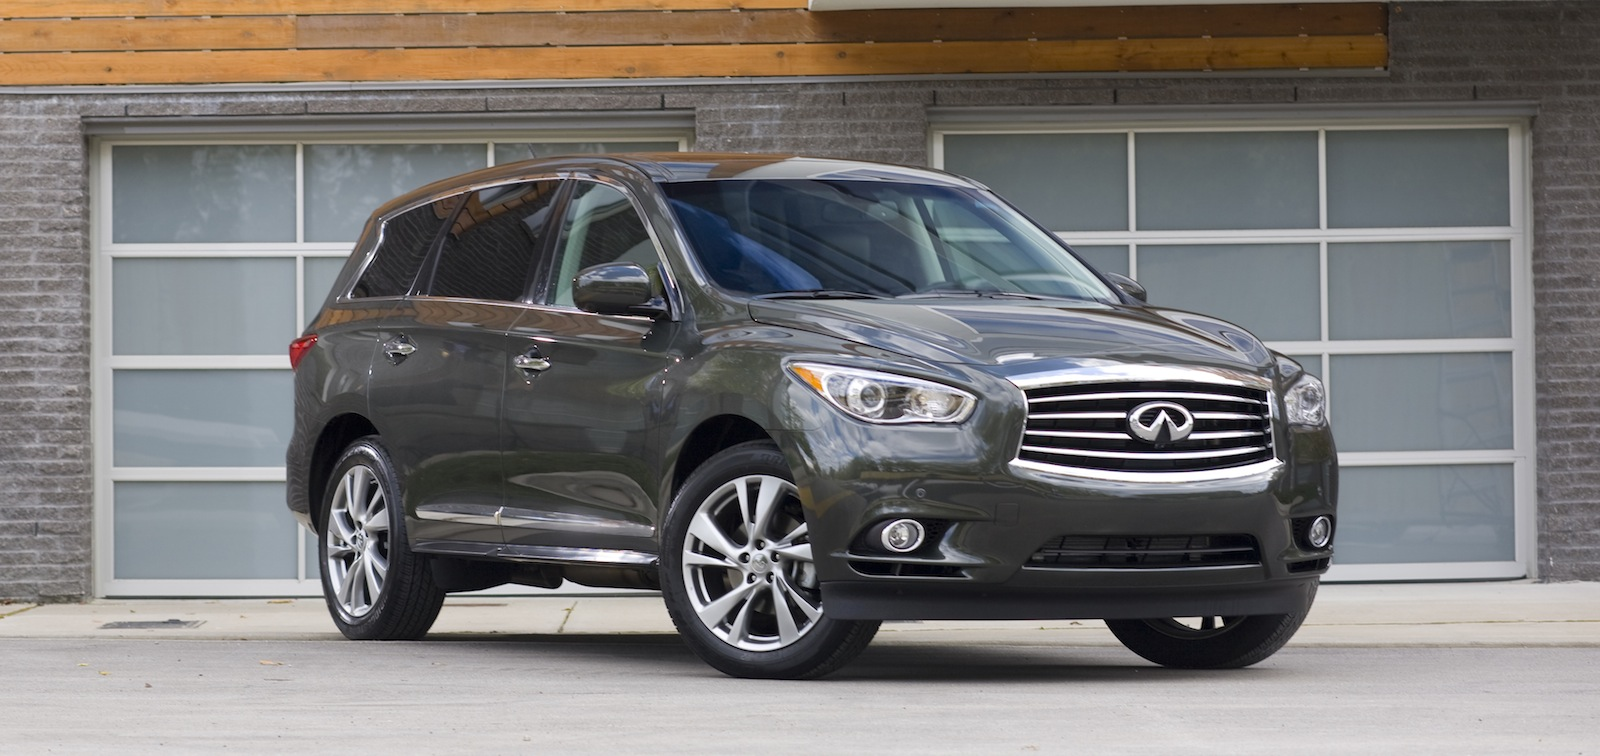 coming soon 2014 infiniti qx60 hybrid review nicoclub. Black Bedroom Furniture Sets. Home Design Ideas